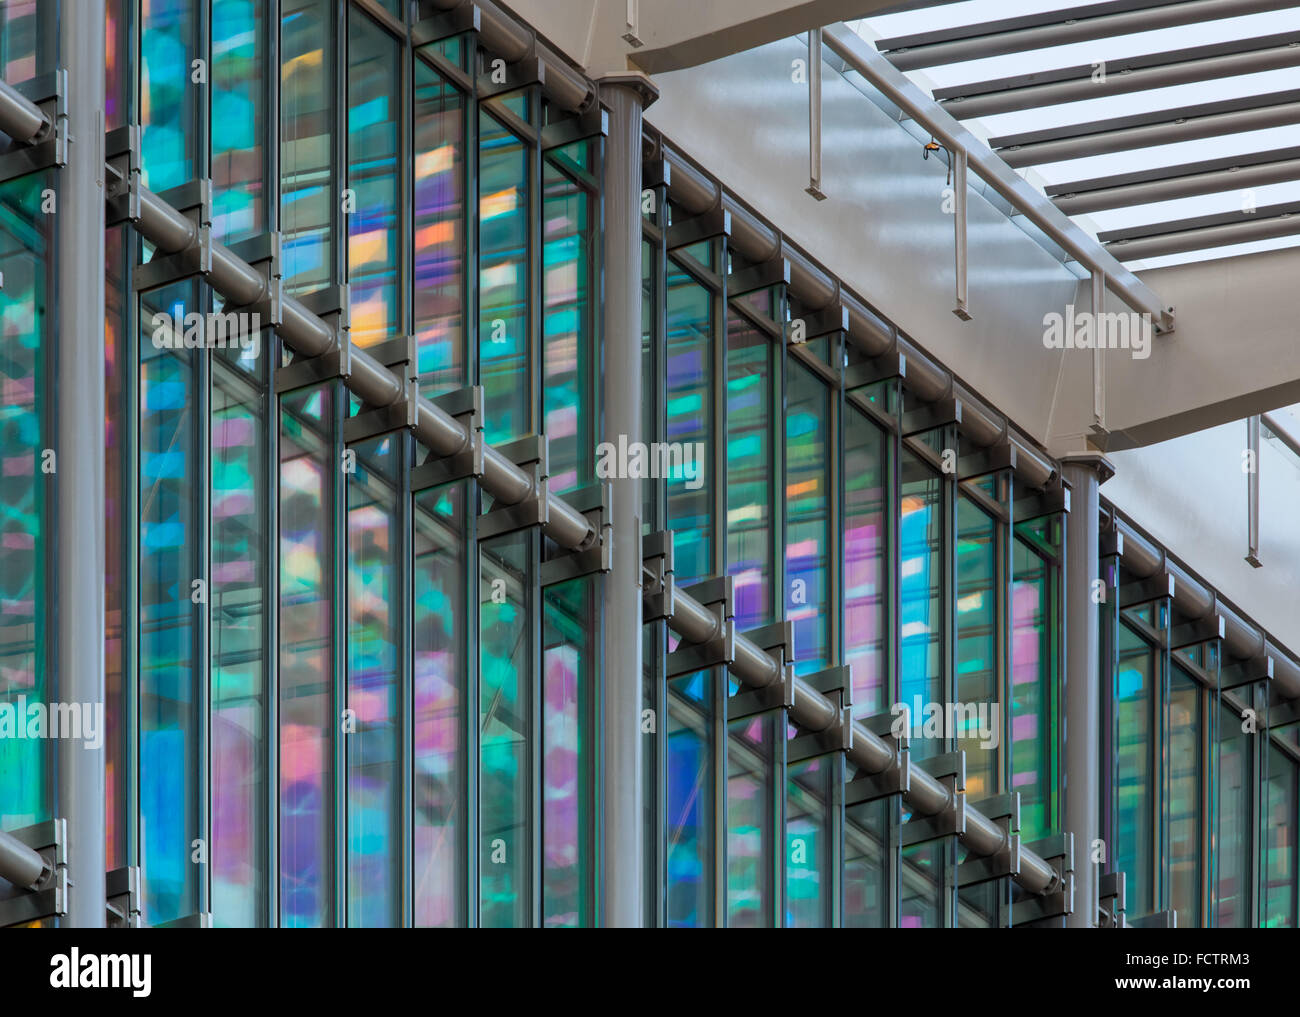 Francis Crick Institut an Midland Road, St Pancras, London Architekten HOK mit PLP Architektur. Stockbild